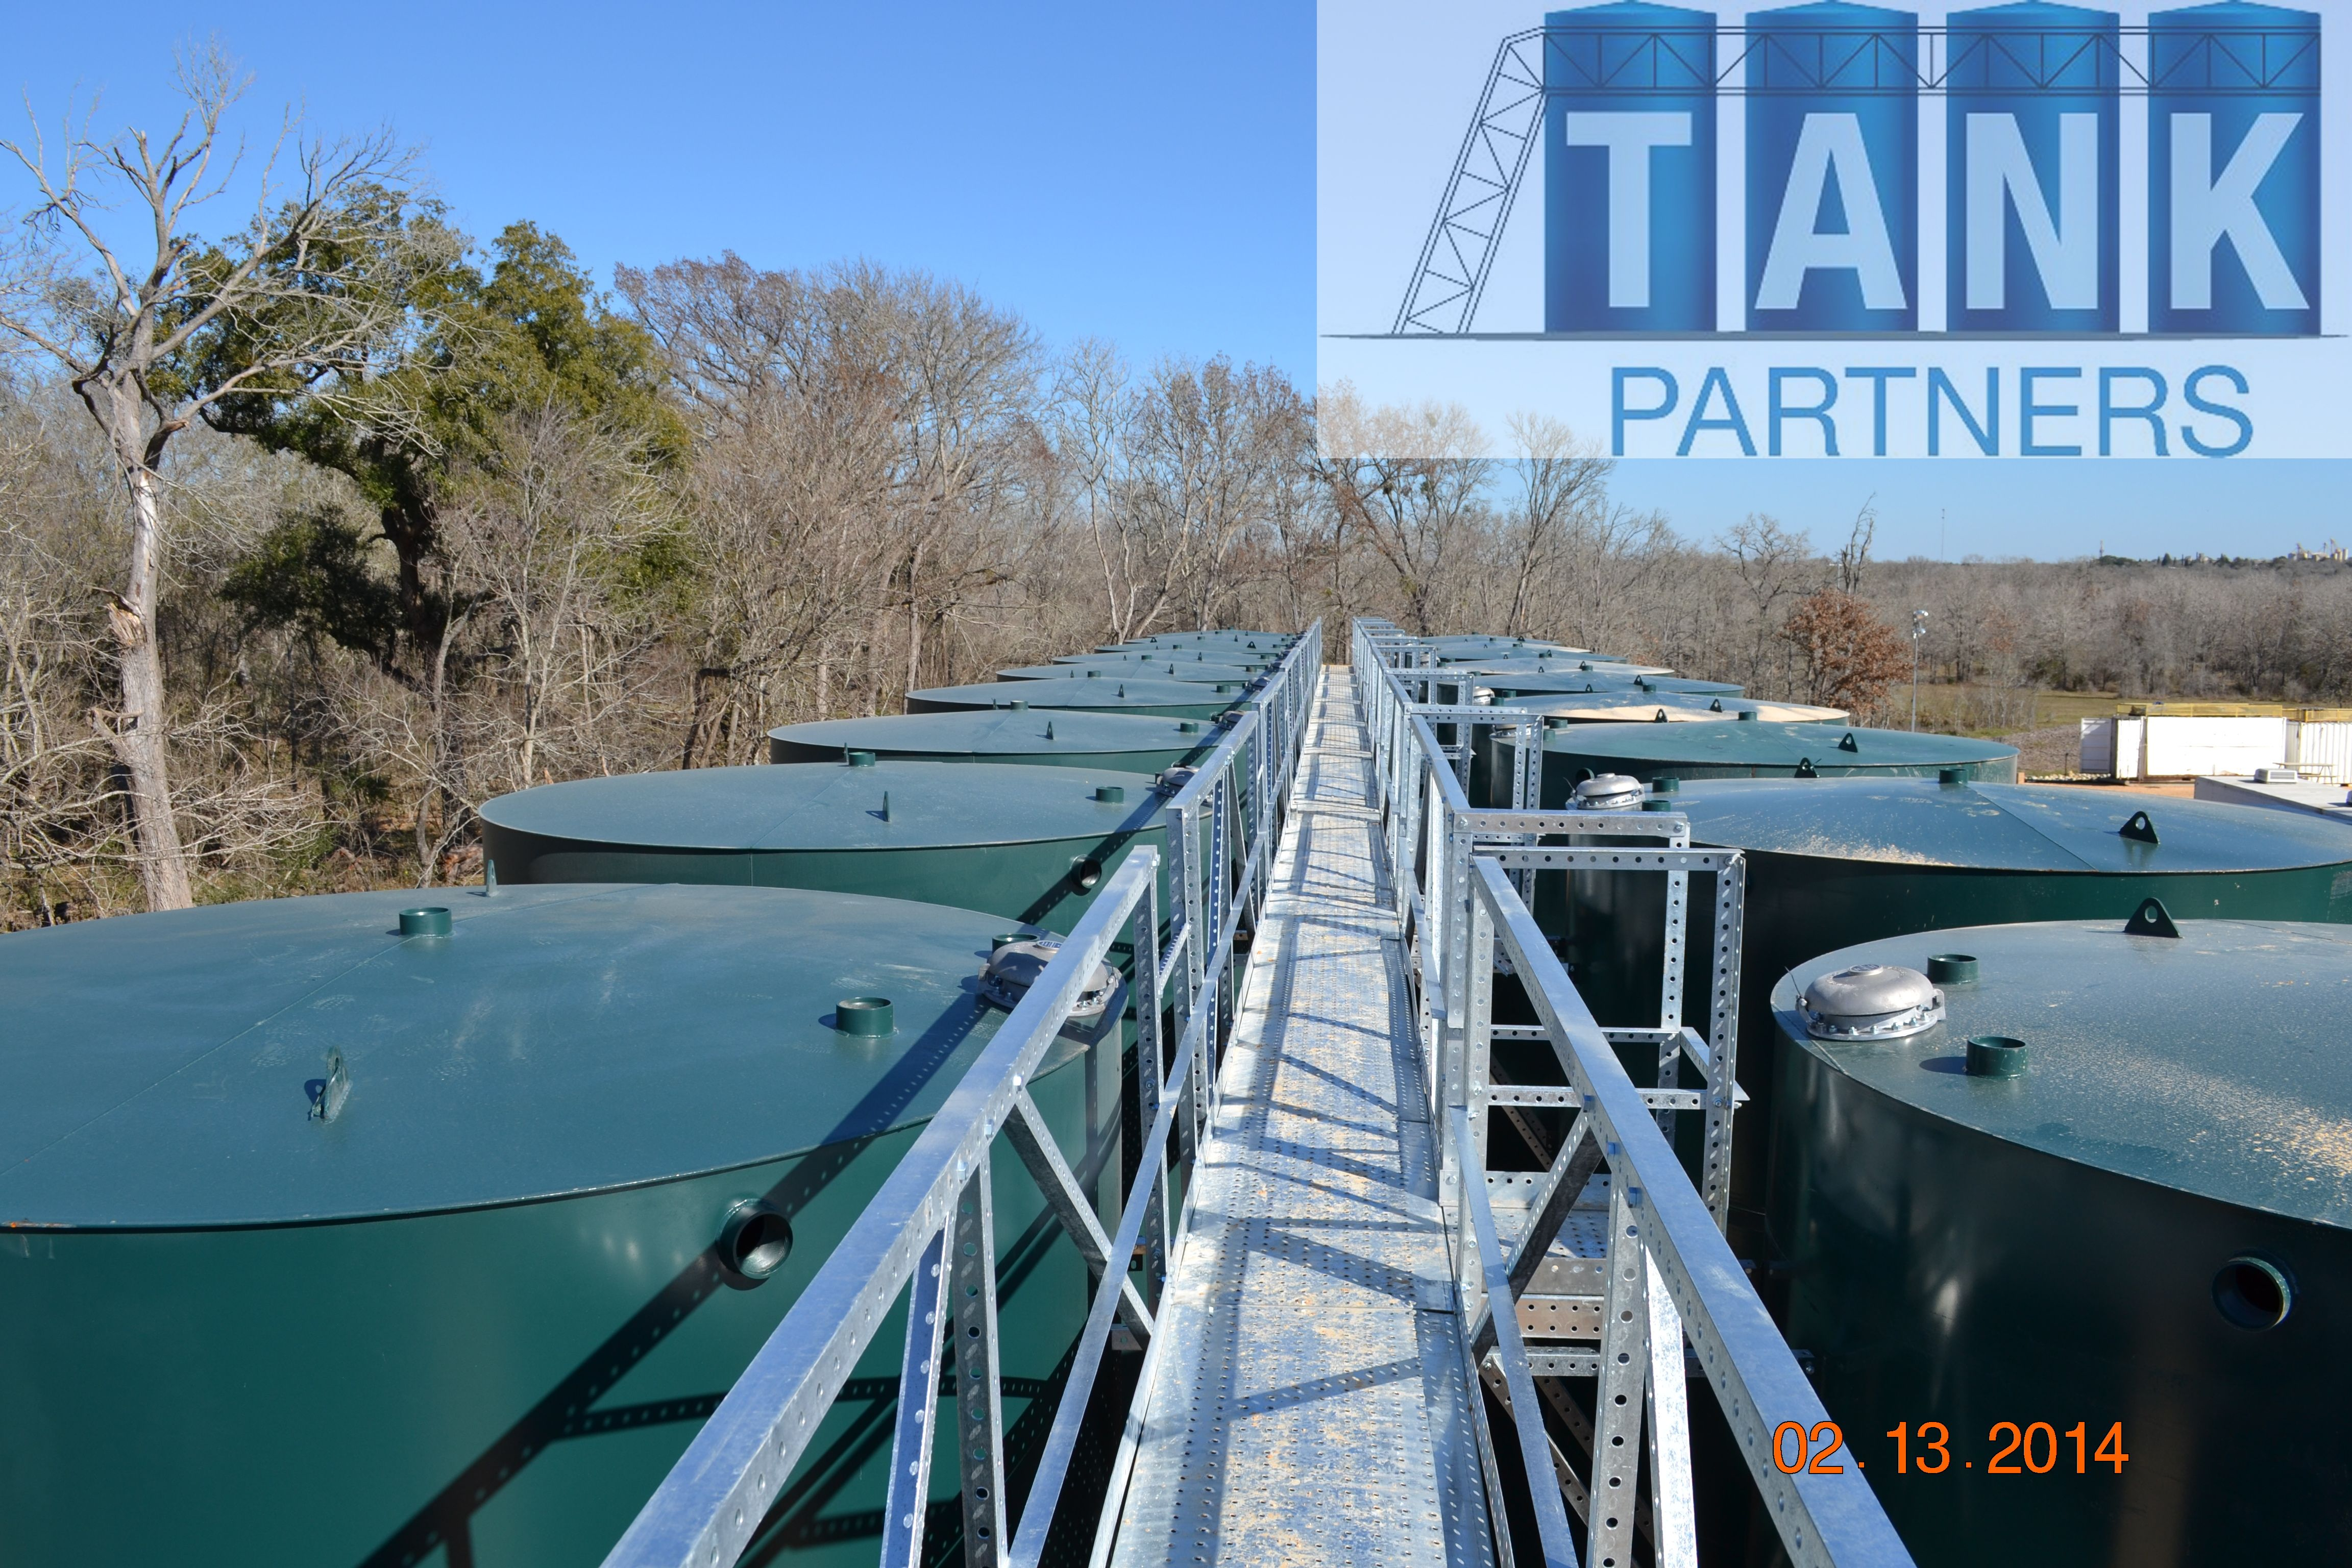 Tank Partners walkways and Go-ins allow full and safe access to all tanks in the battery